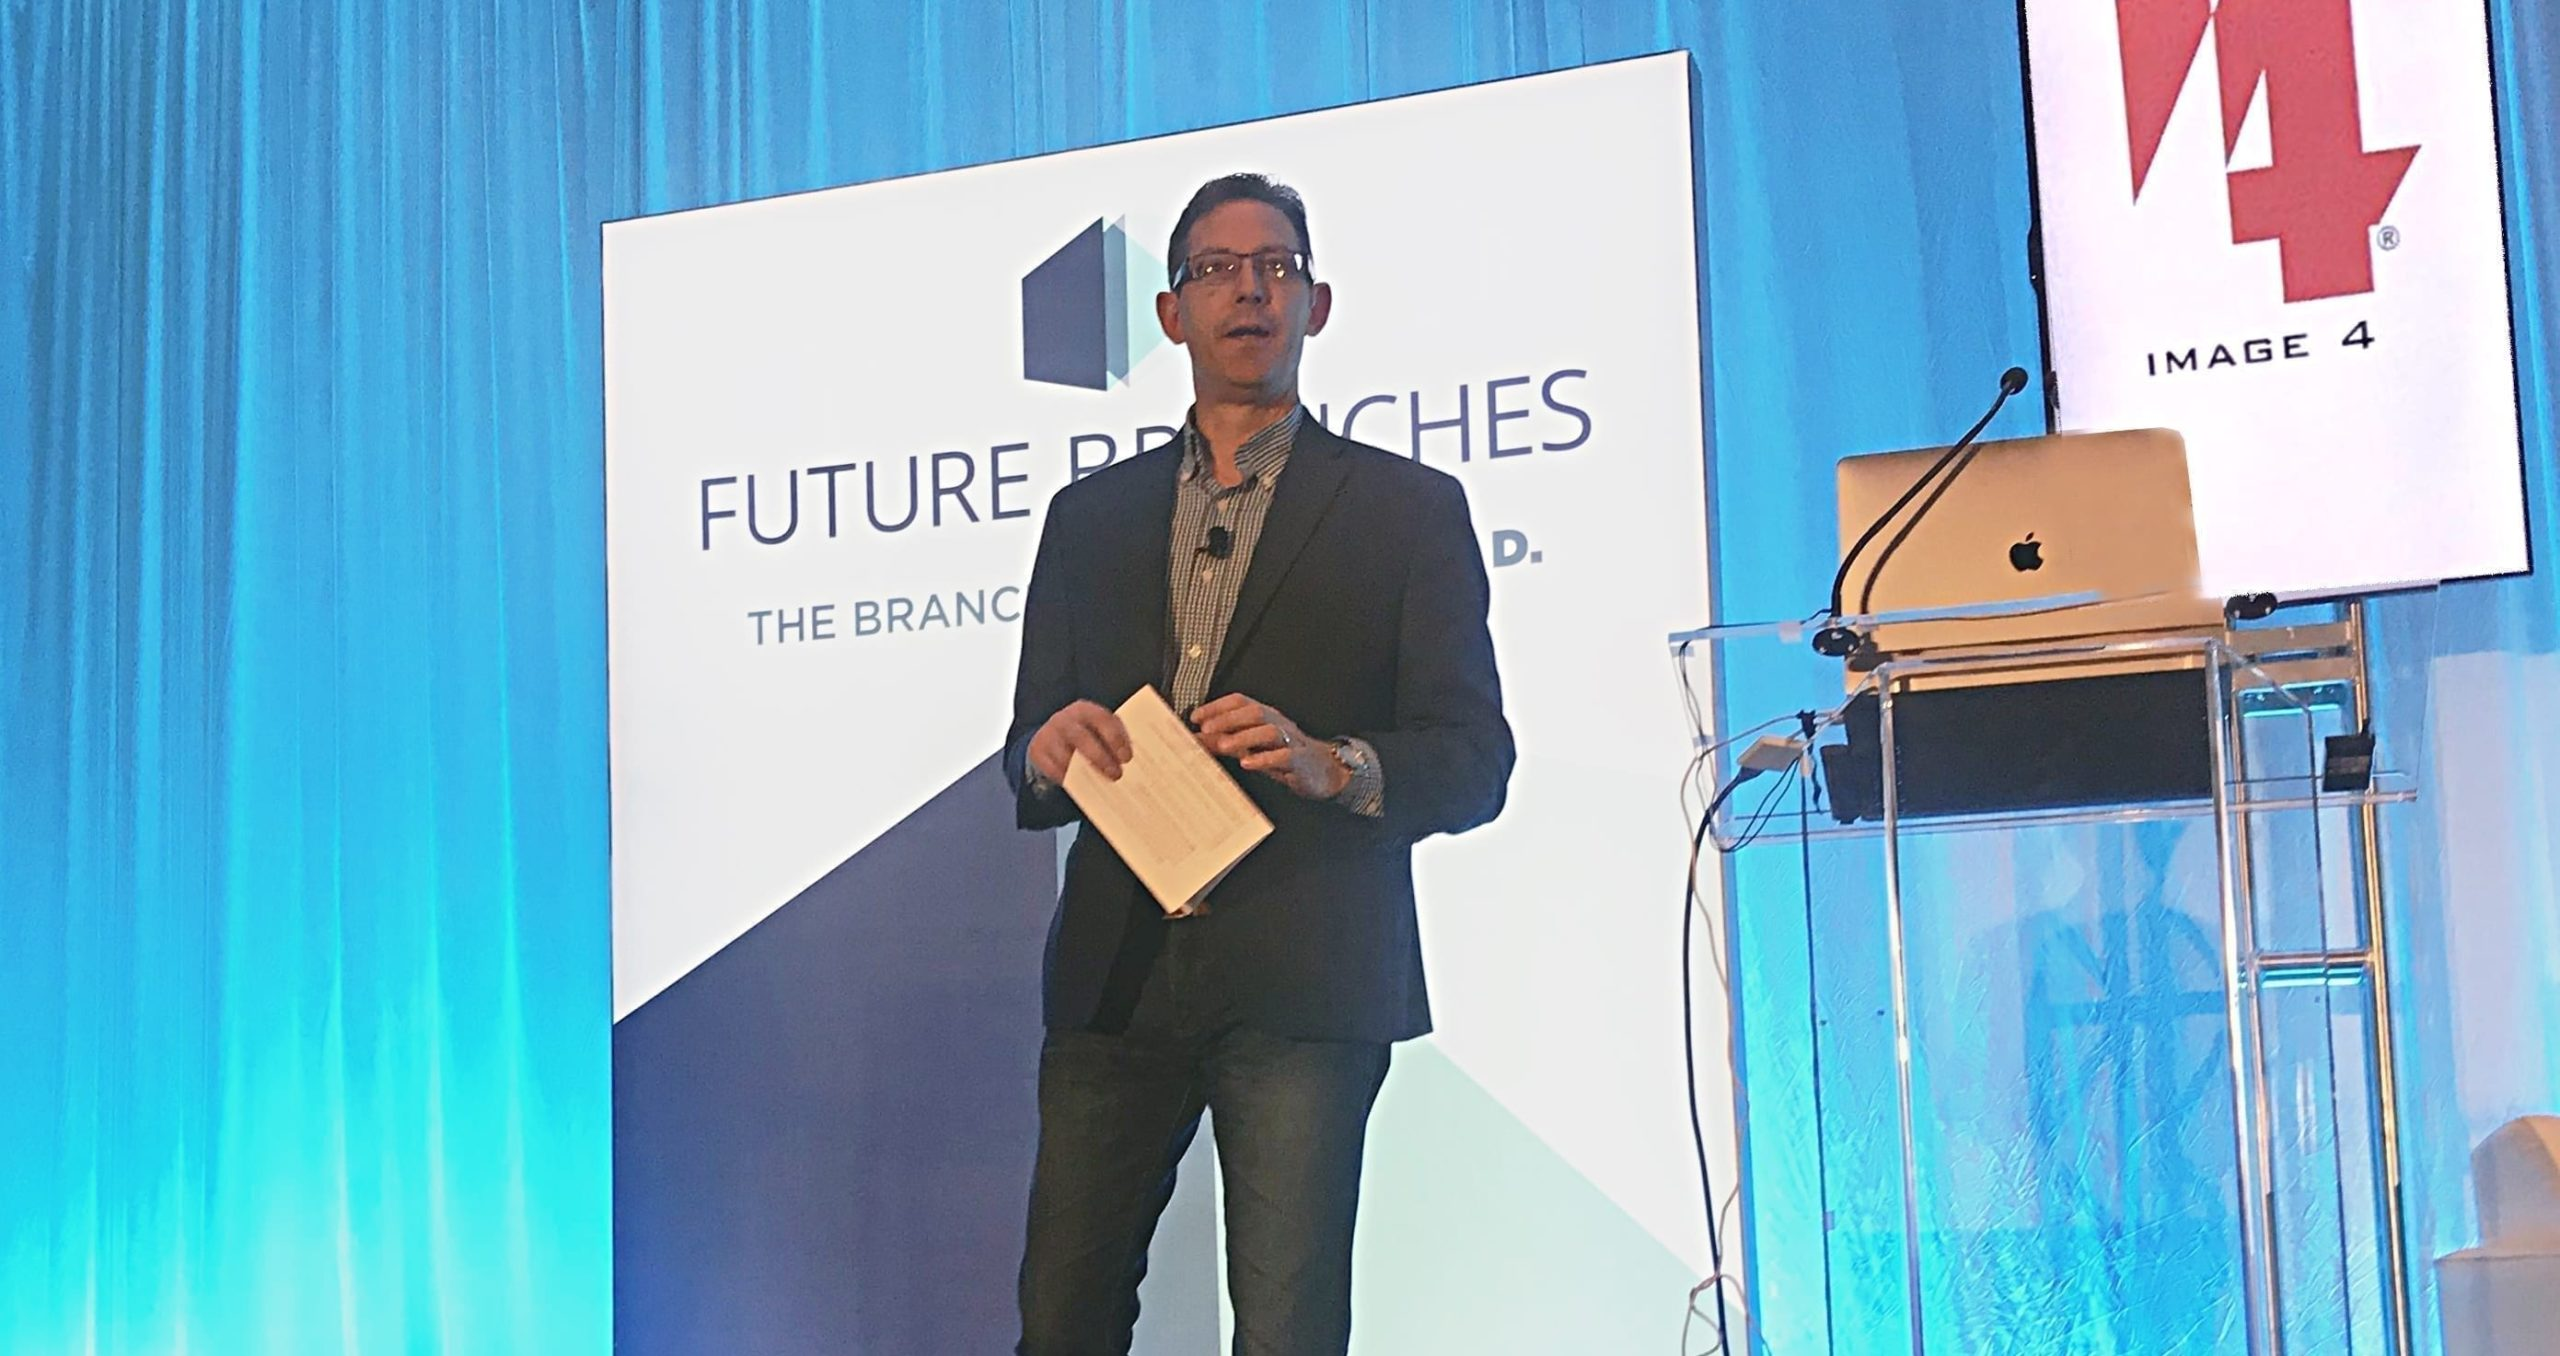 Jeff Baker, CEO Image 4, Chair, Future Branches